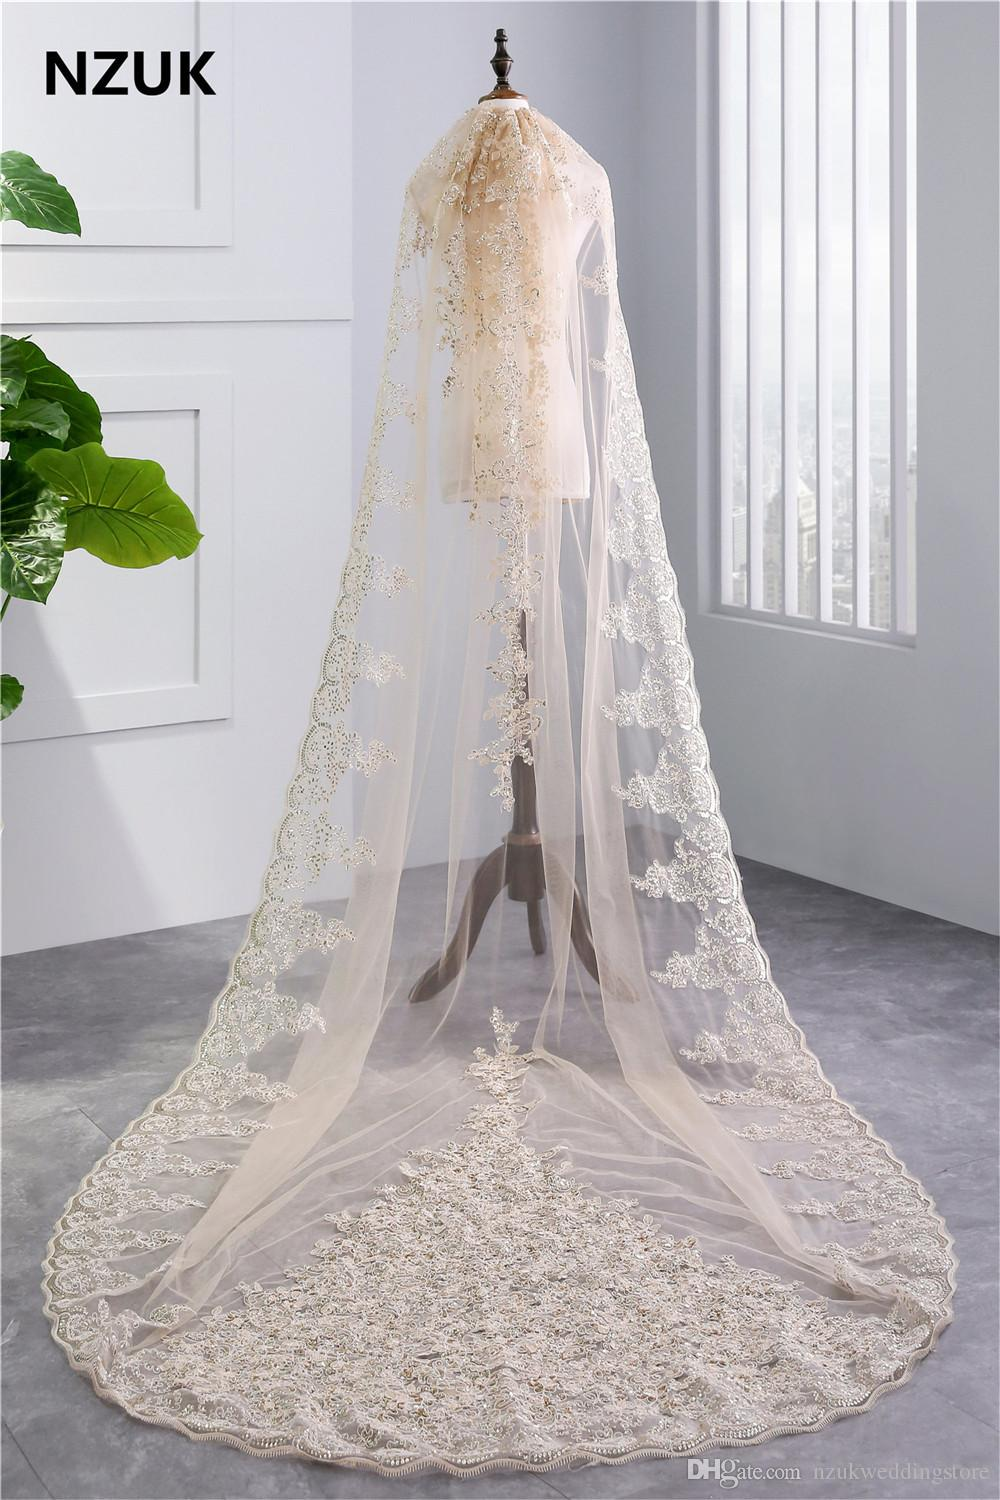 2018 Luxury 3.5 Meters Full Gold Lace Edge Two Layers Long Wedding Veils with Comb White Ivory Bridal Veil velo de novia